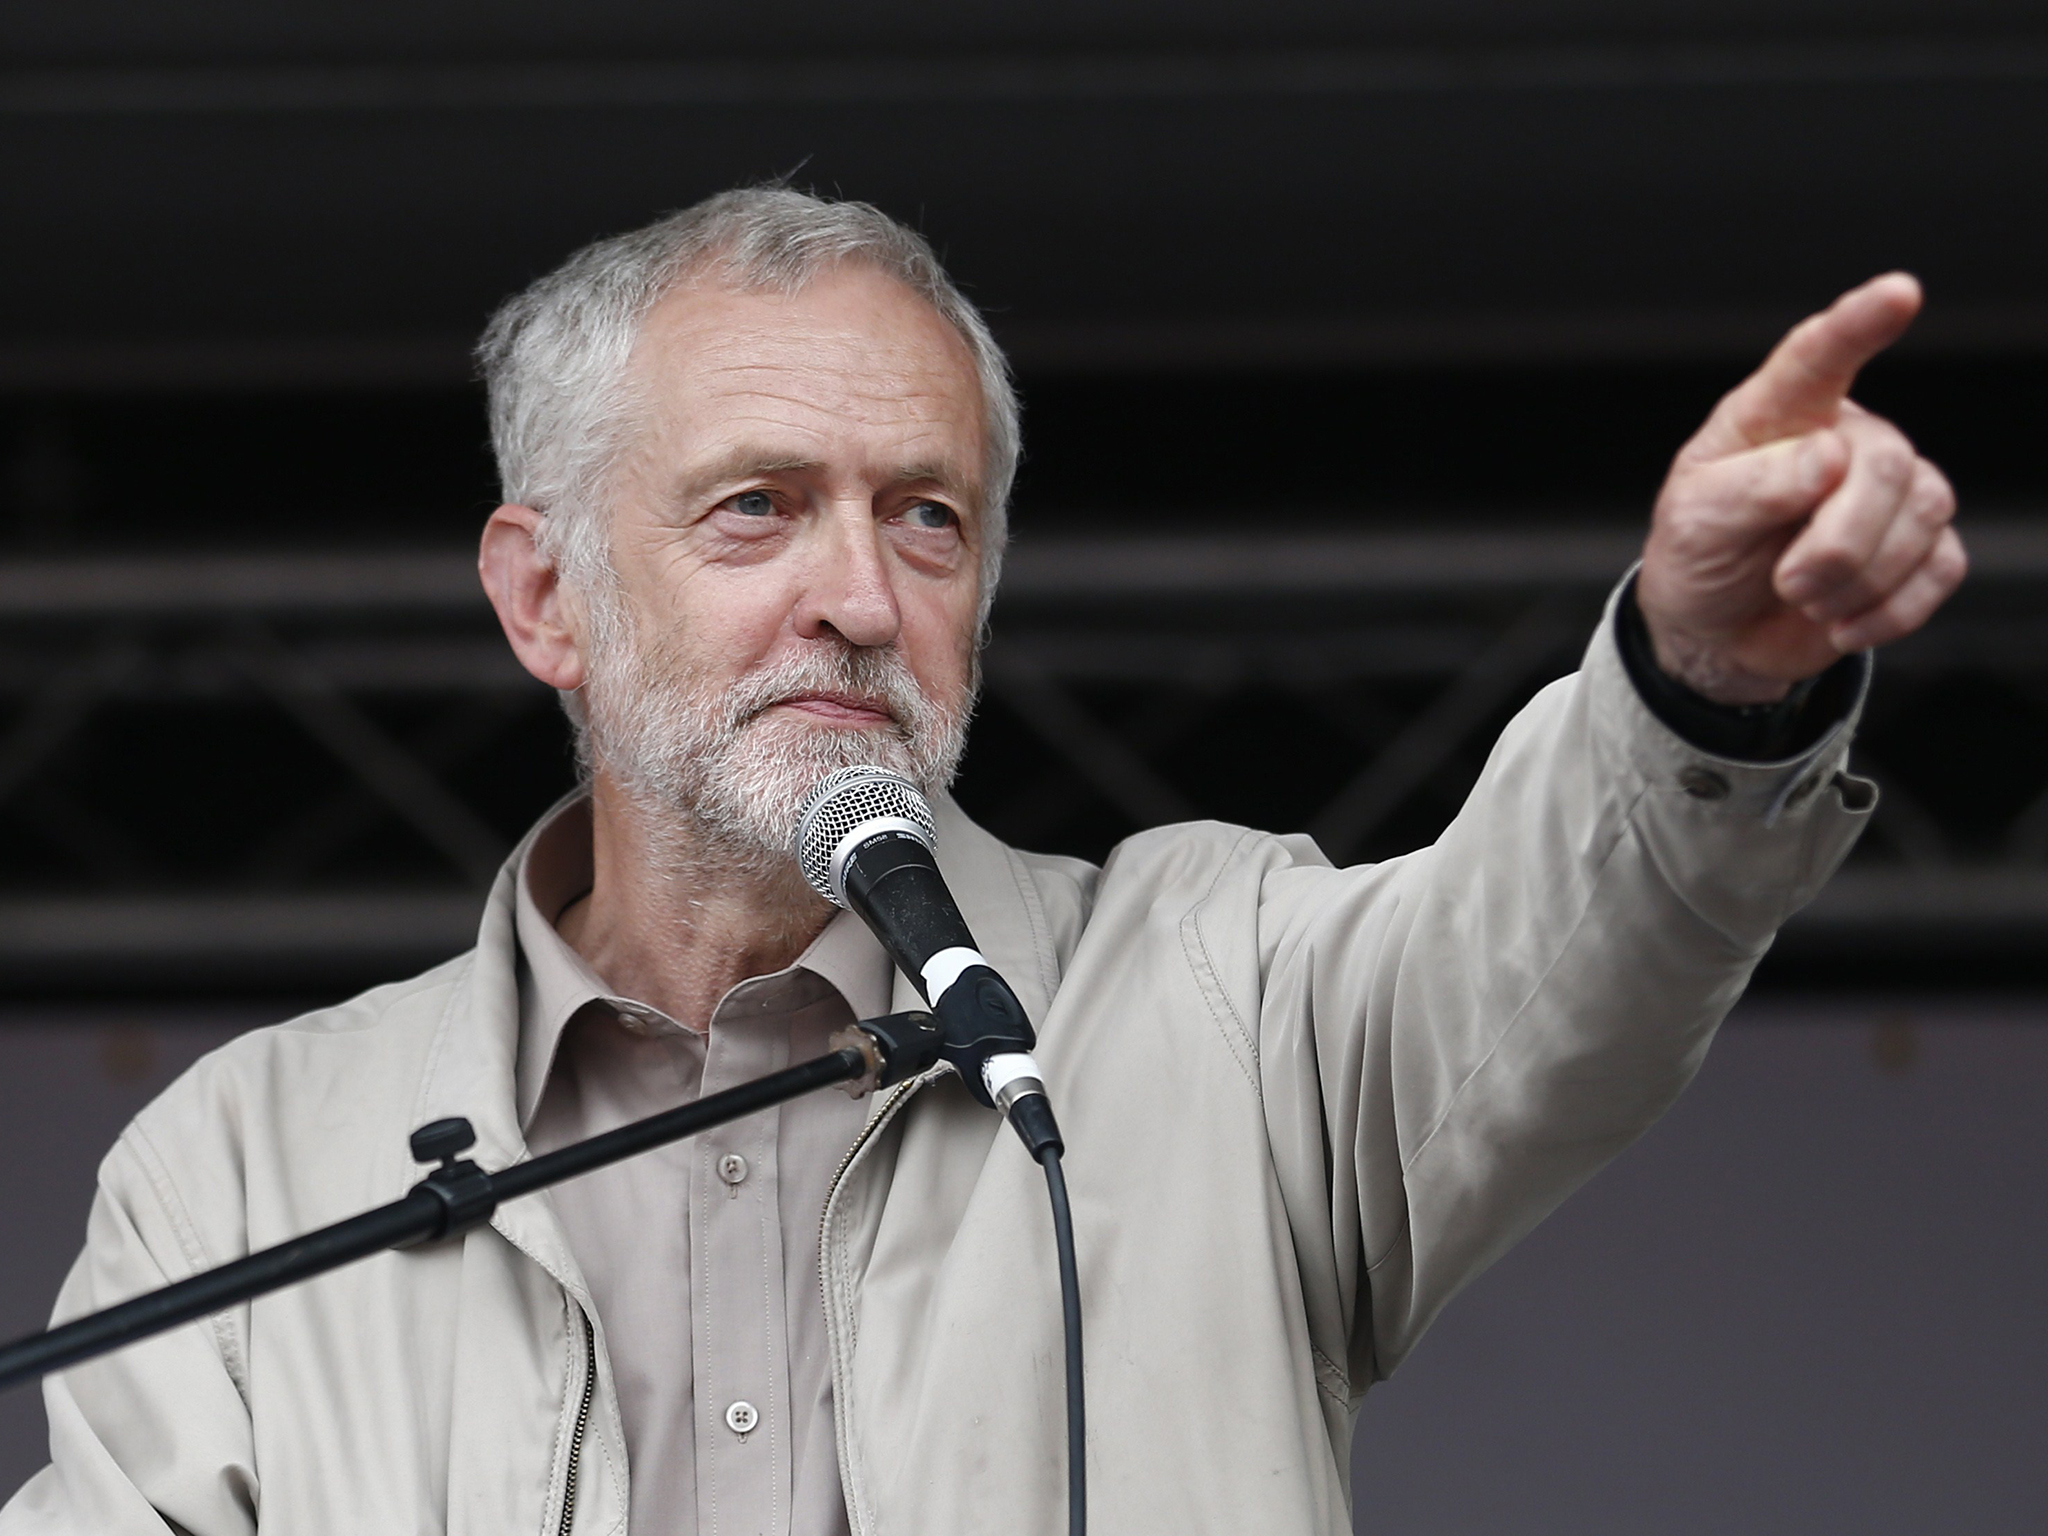 Jeremy Corbyn Tops Labour Leadership Vote Of Constituency Groups